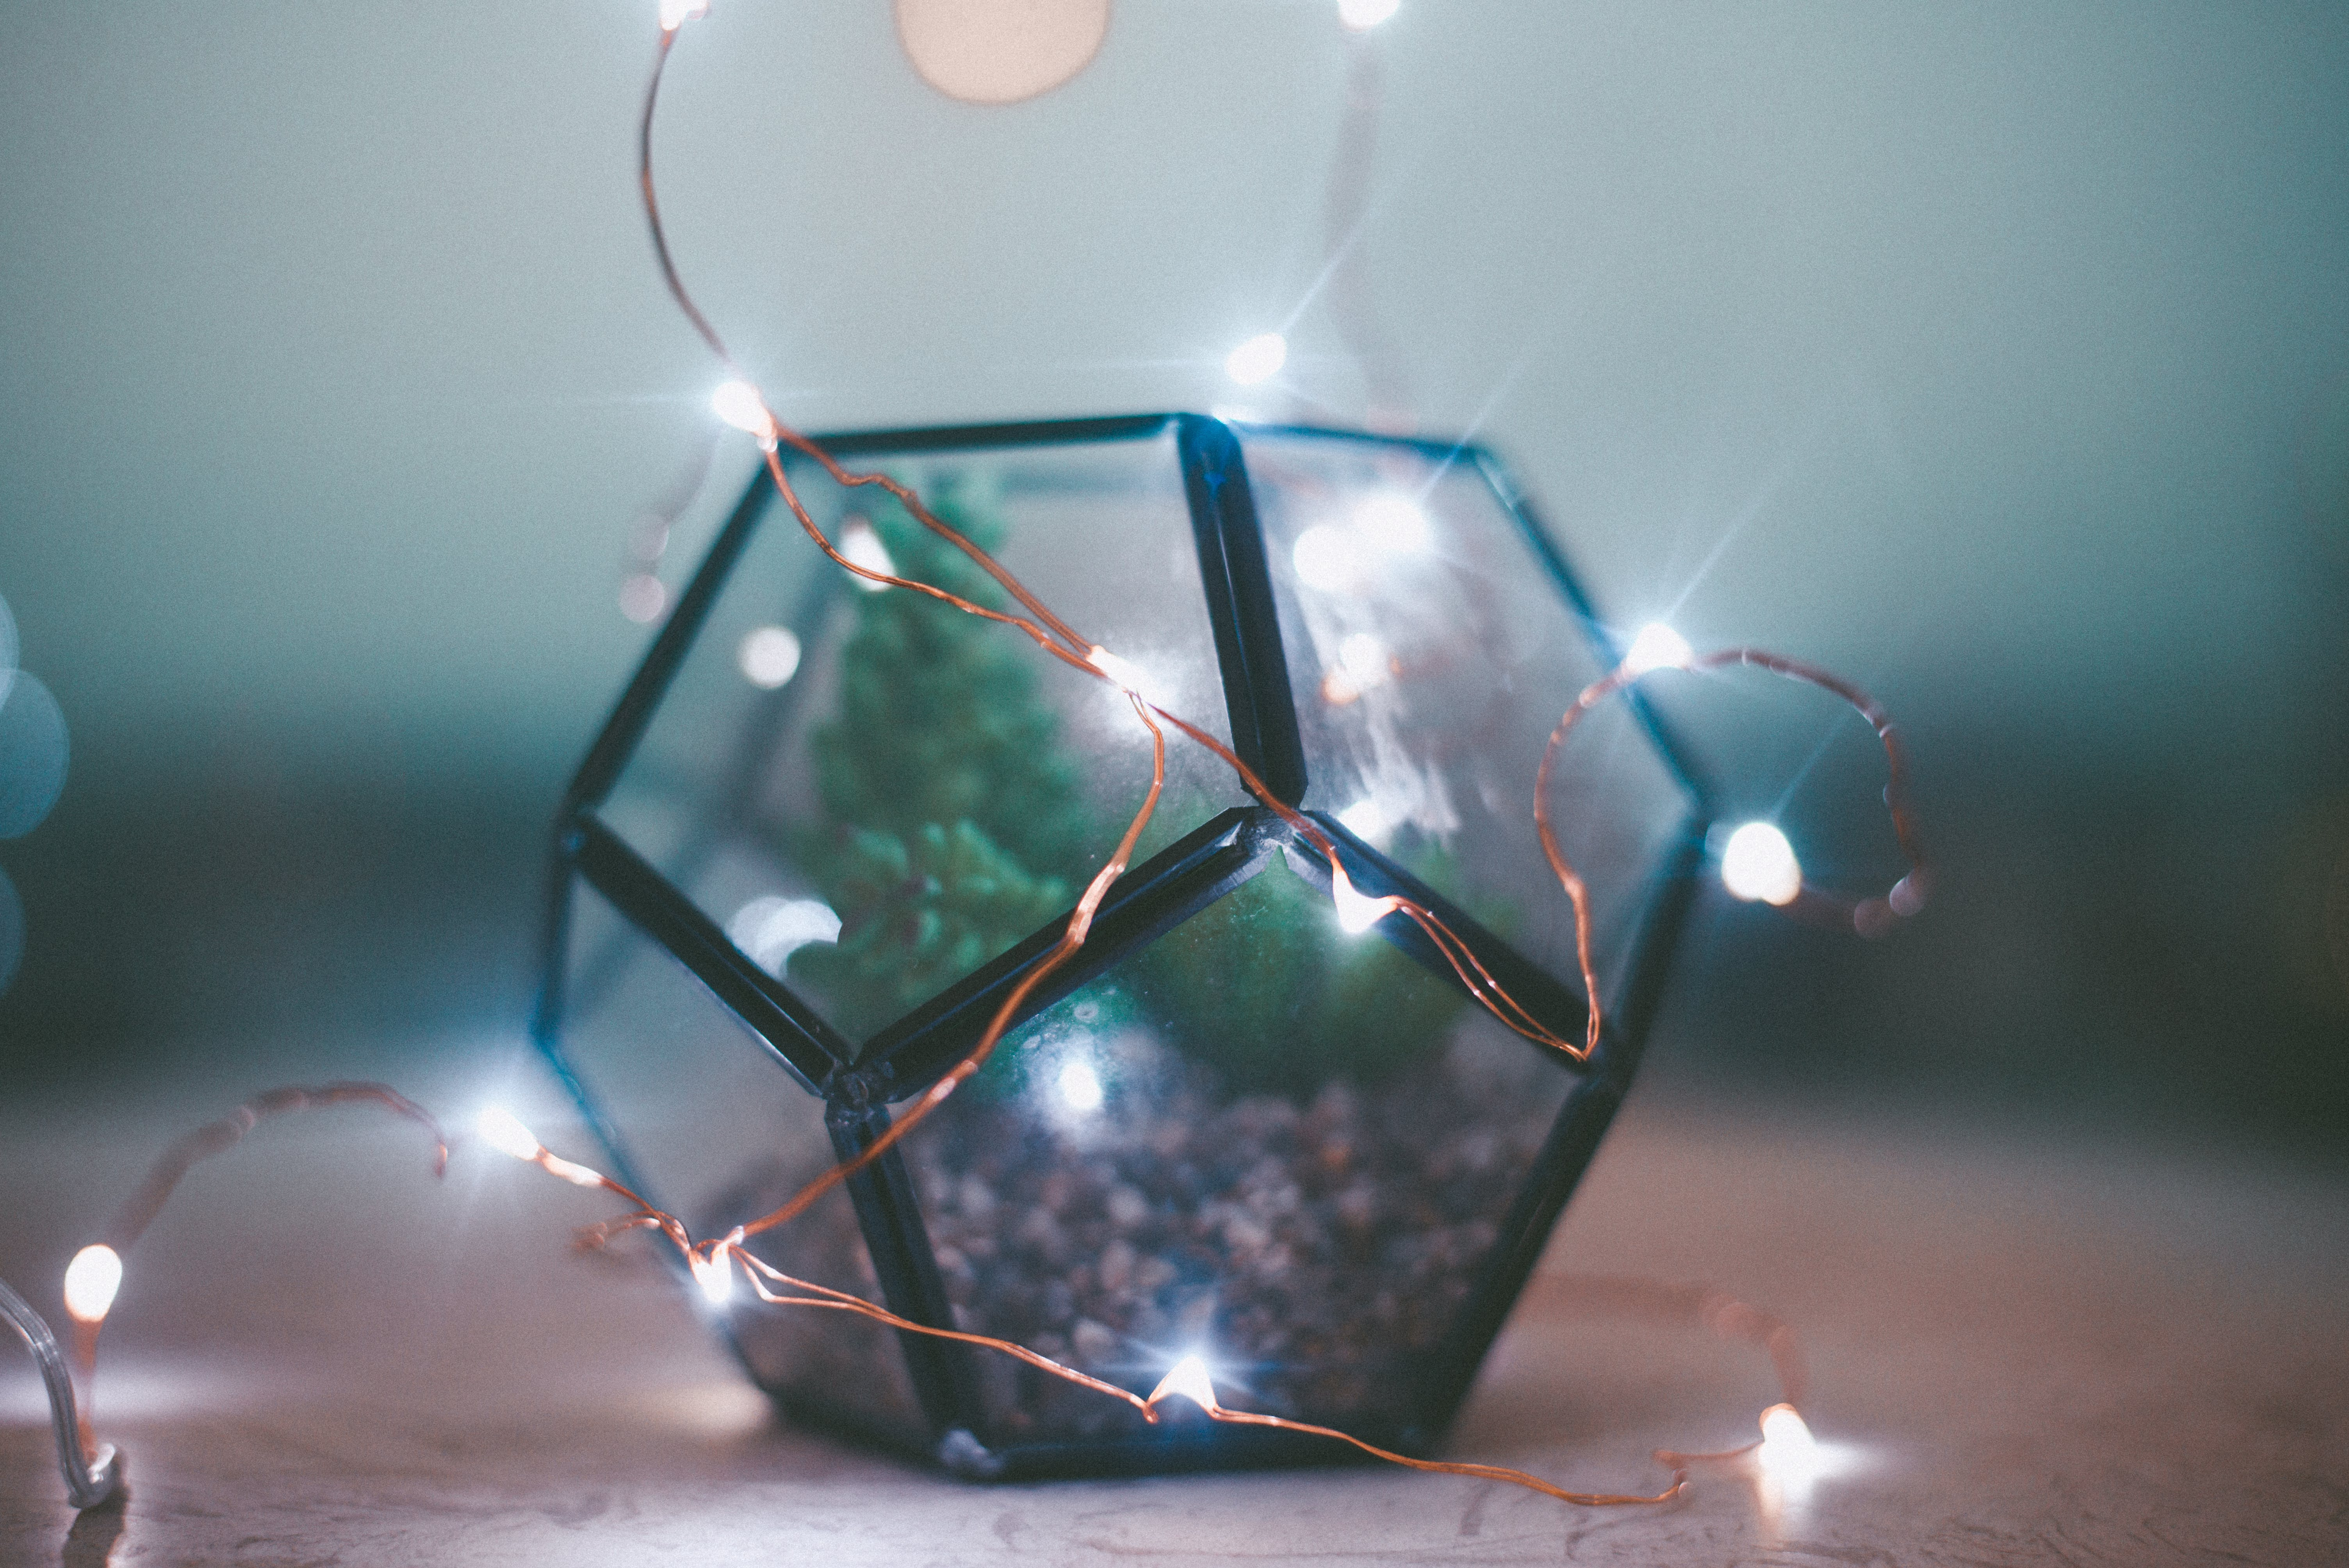 Closeup Photo of Lighted String Light